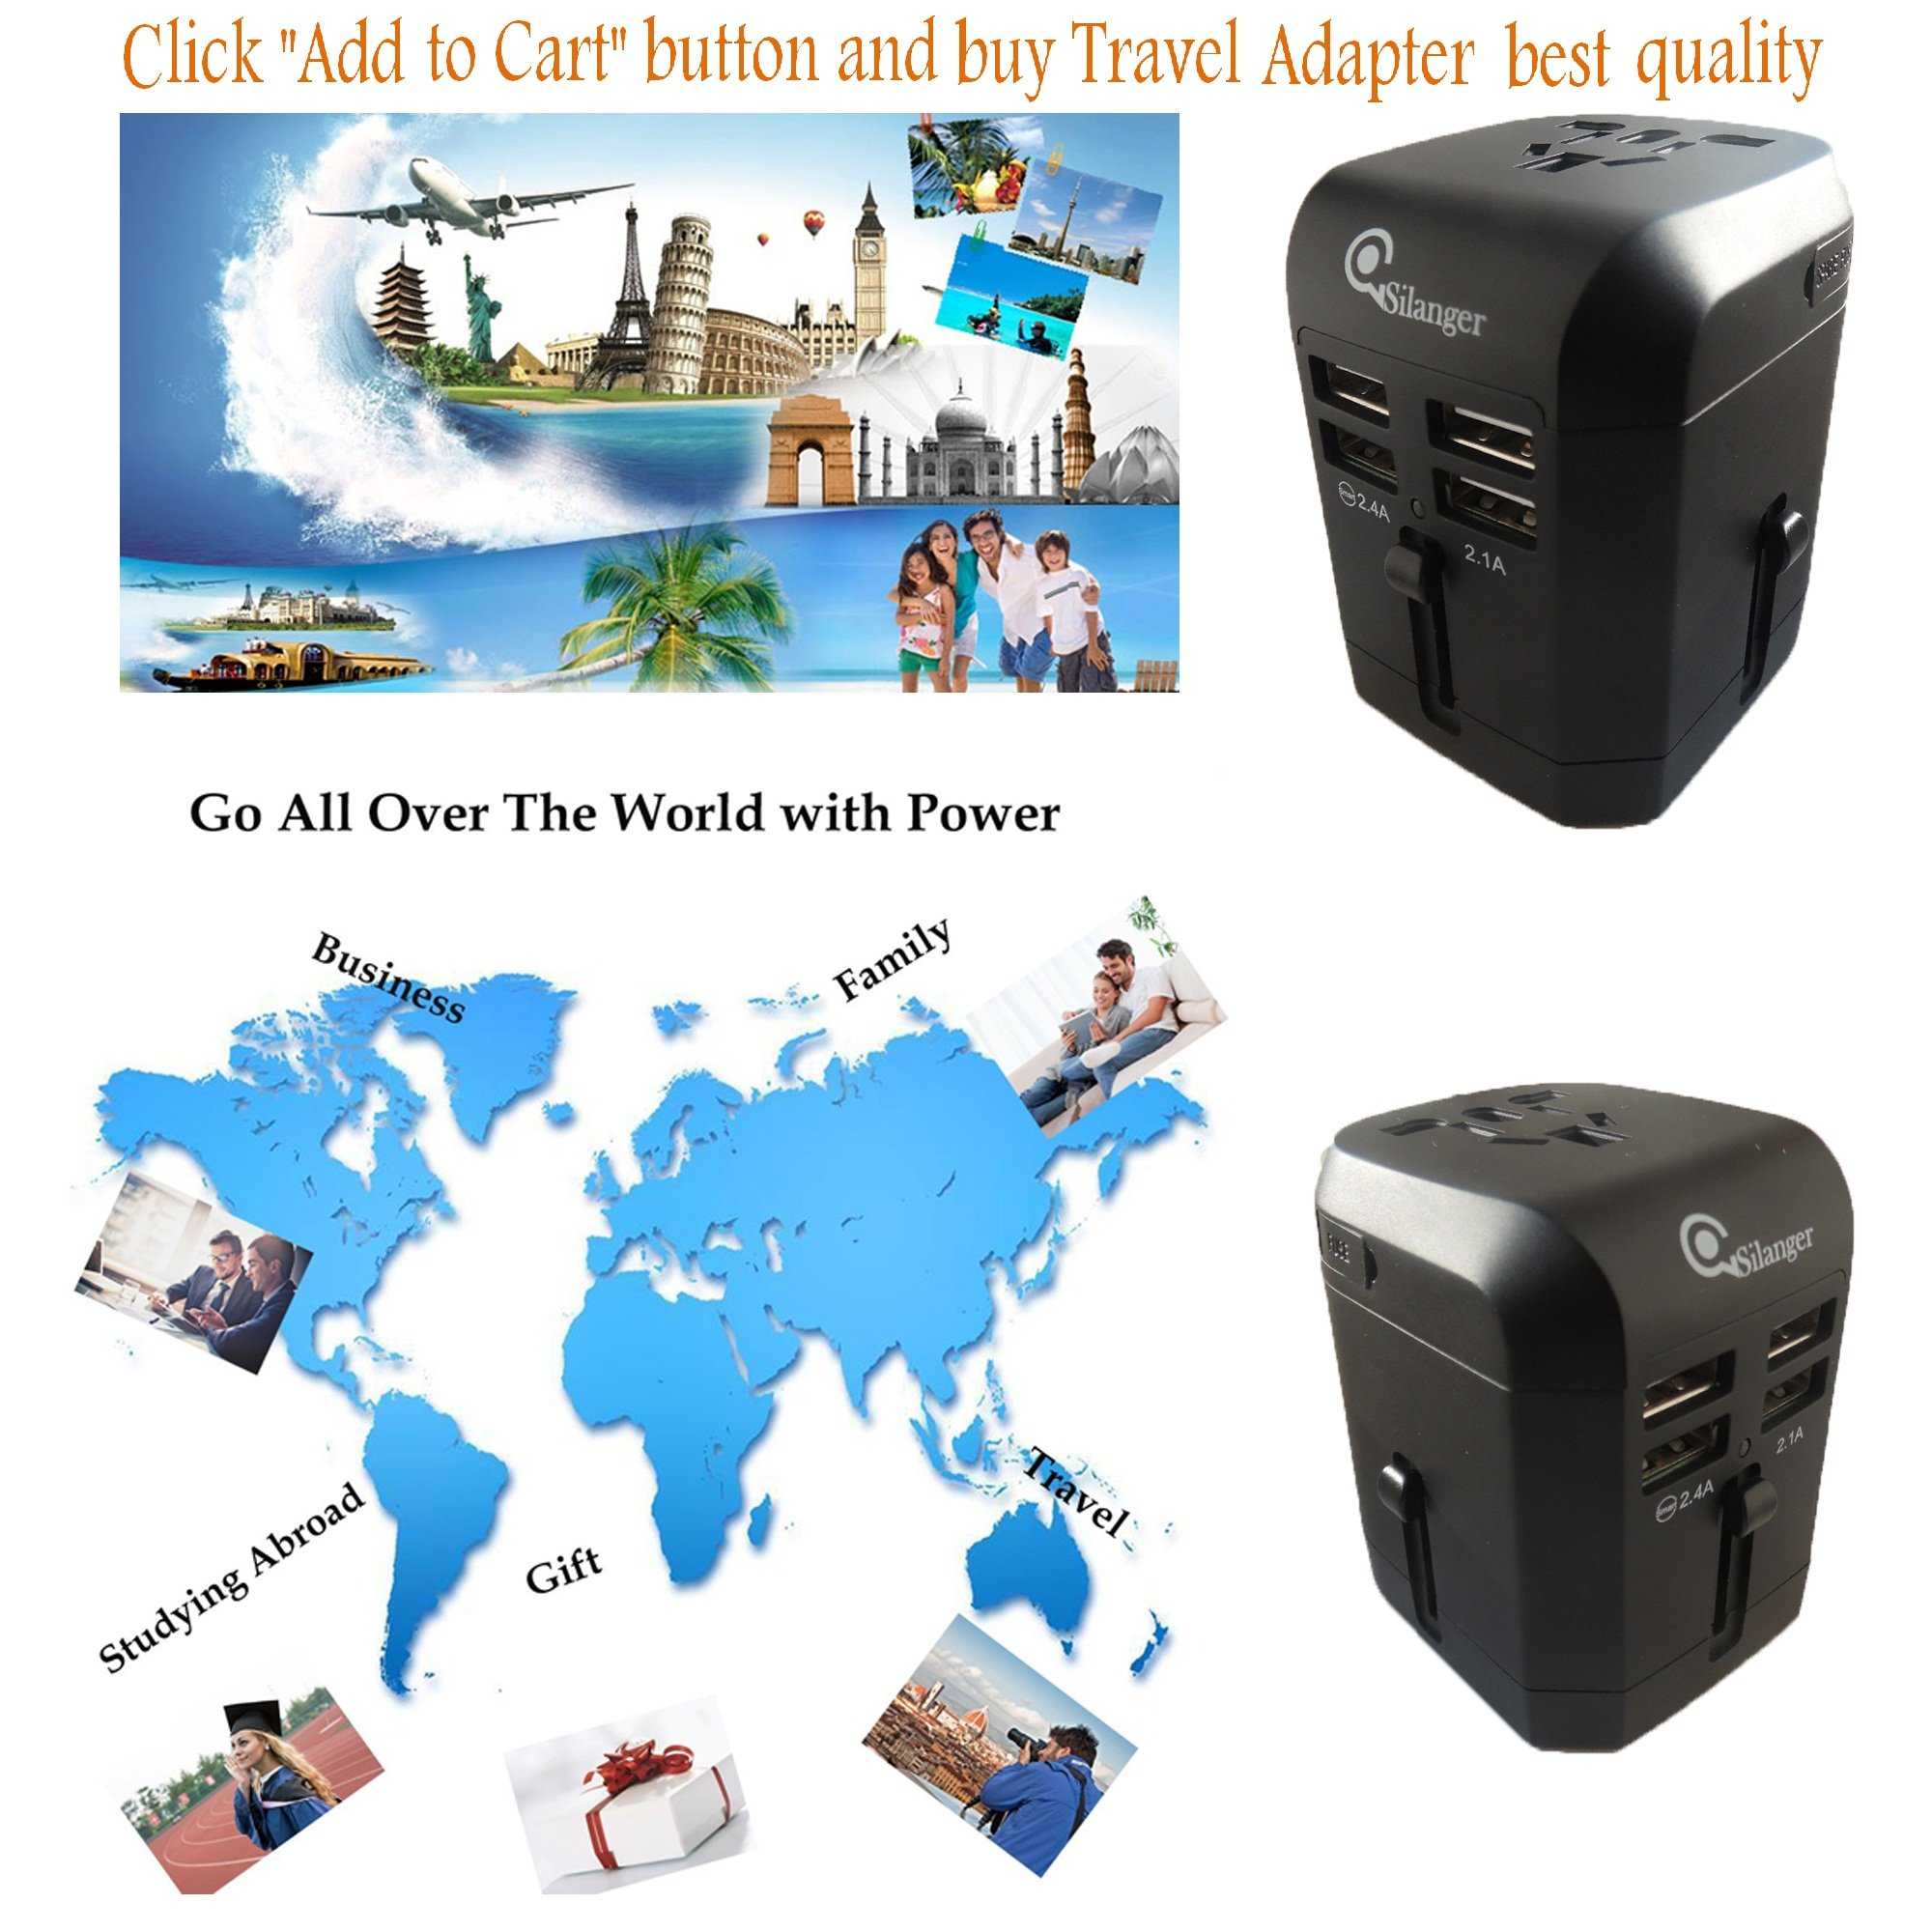 Universal USB Travel Power Adapter-Silanger All In One Wall Charger AC Power Plug Adapter For USA EU UK AUS Cell Phone Laptop Including Quad 3.5A Smart Power USB Charging Port (4X USB) by Silanger (Image #8)